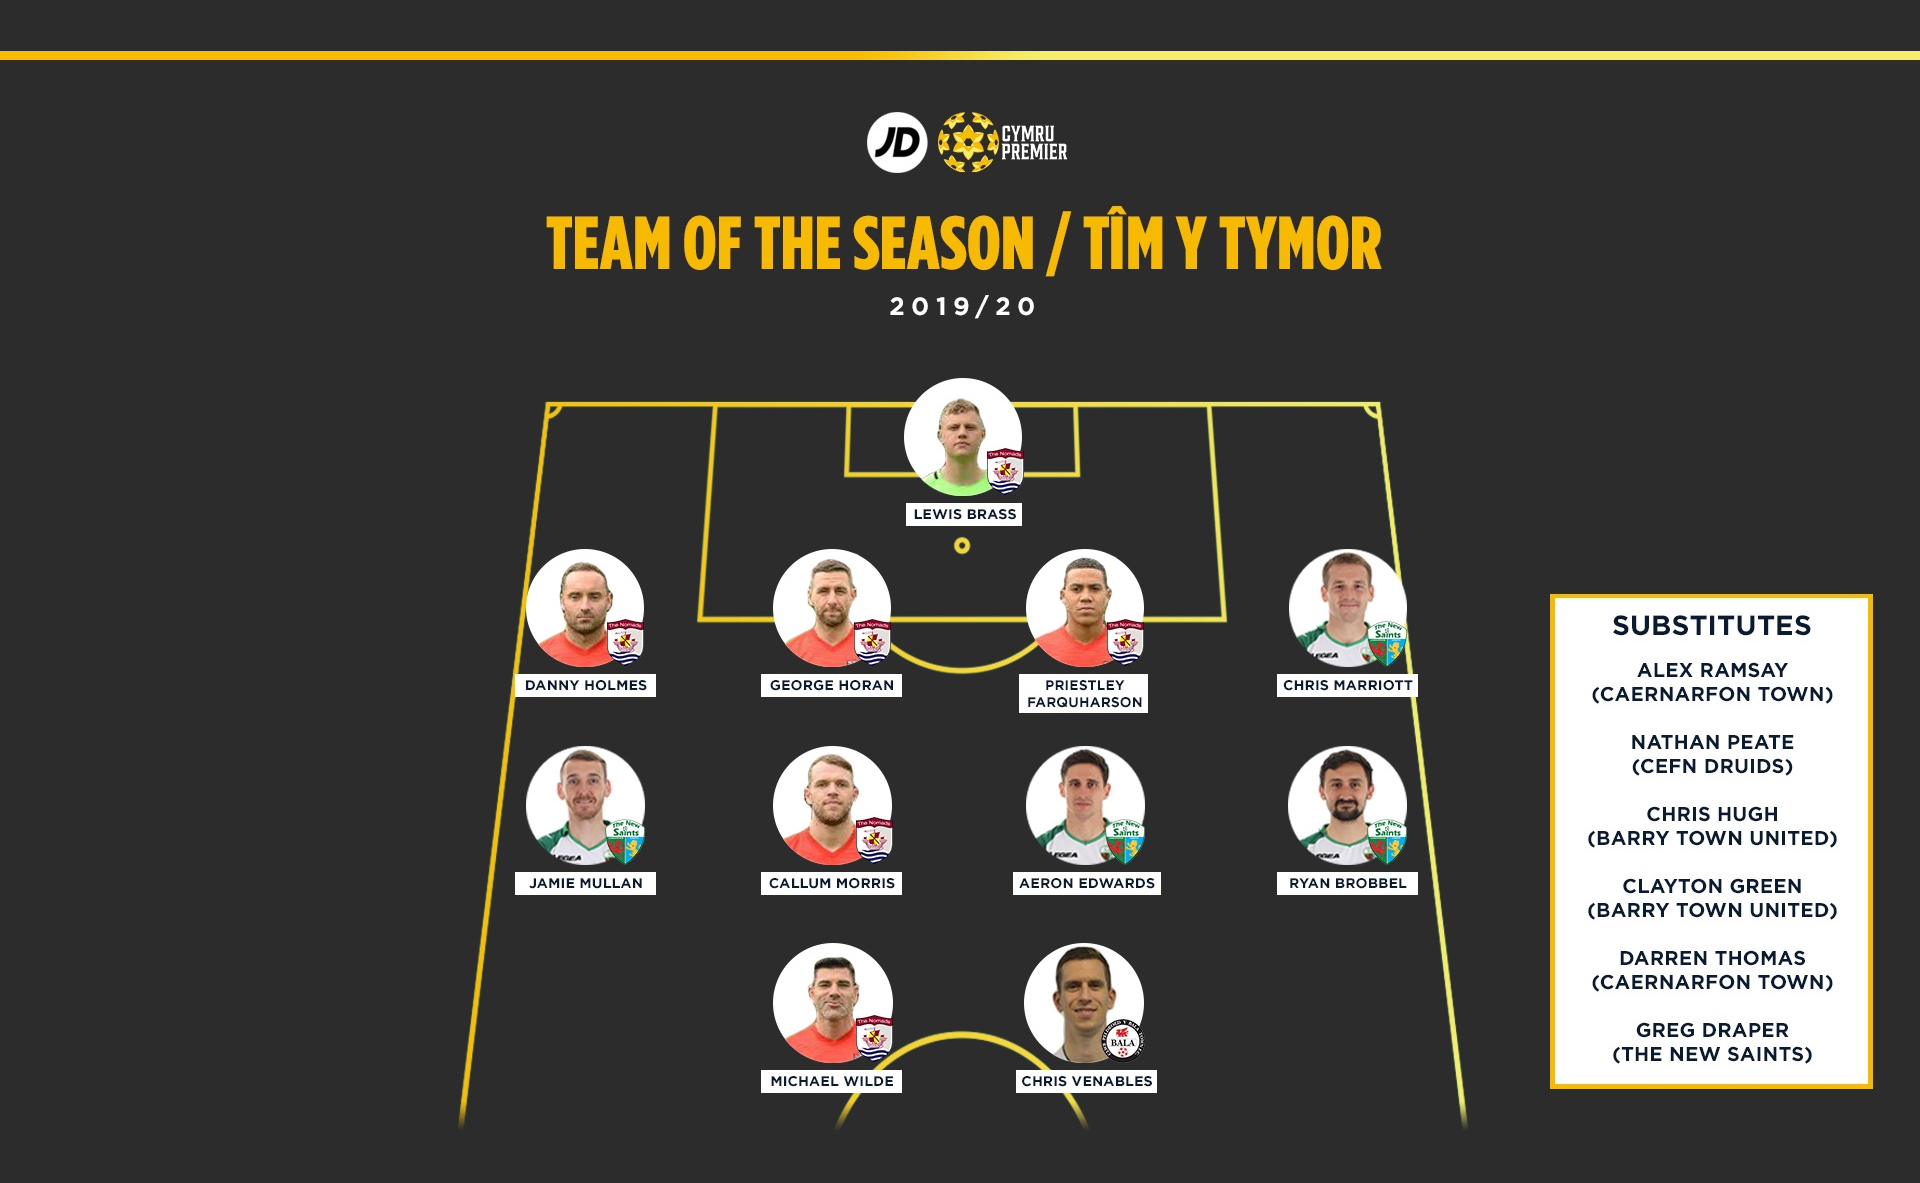 Lewis Brass, Danny Holmes, George Horan, Priestley Farquharson, Callum Morris and Michael Wilde were all named in the JD Cymru Premier Team of the Season